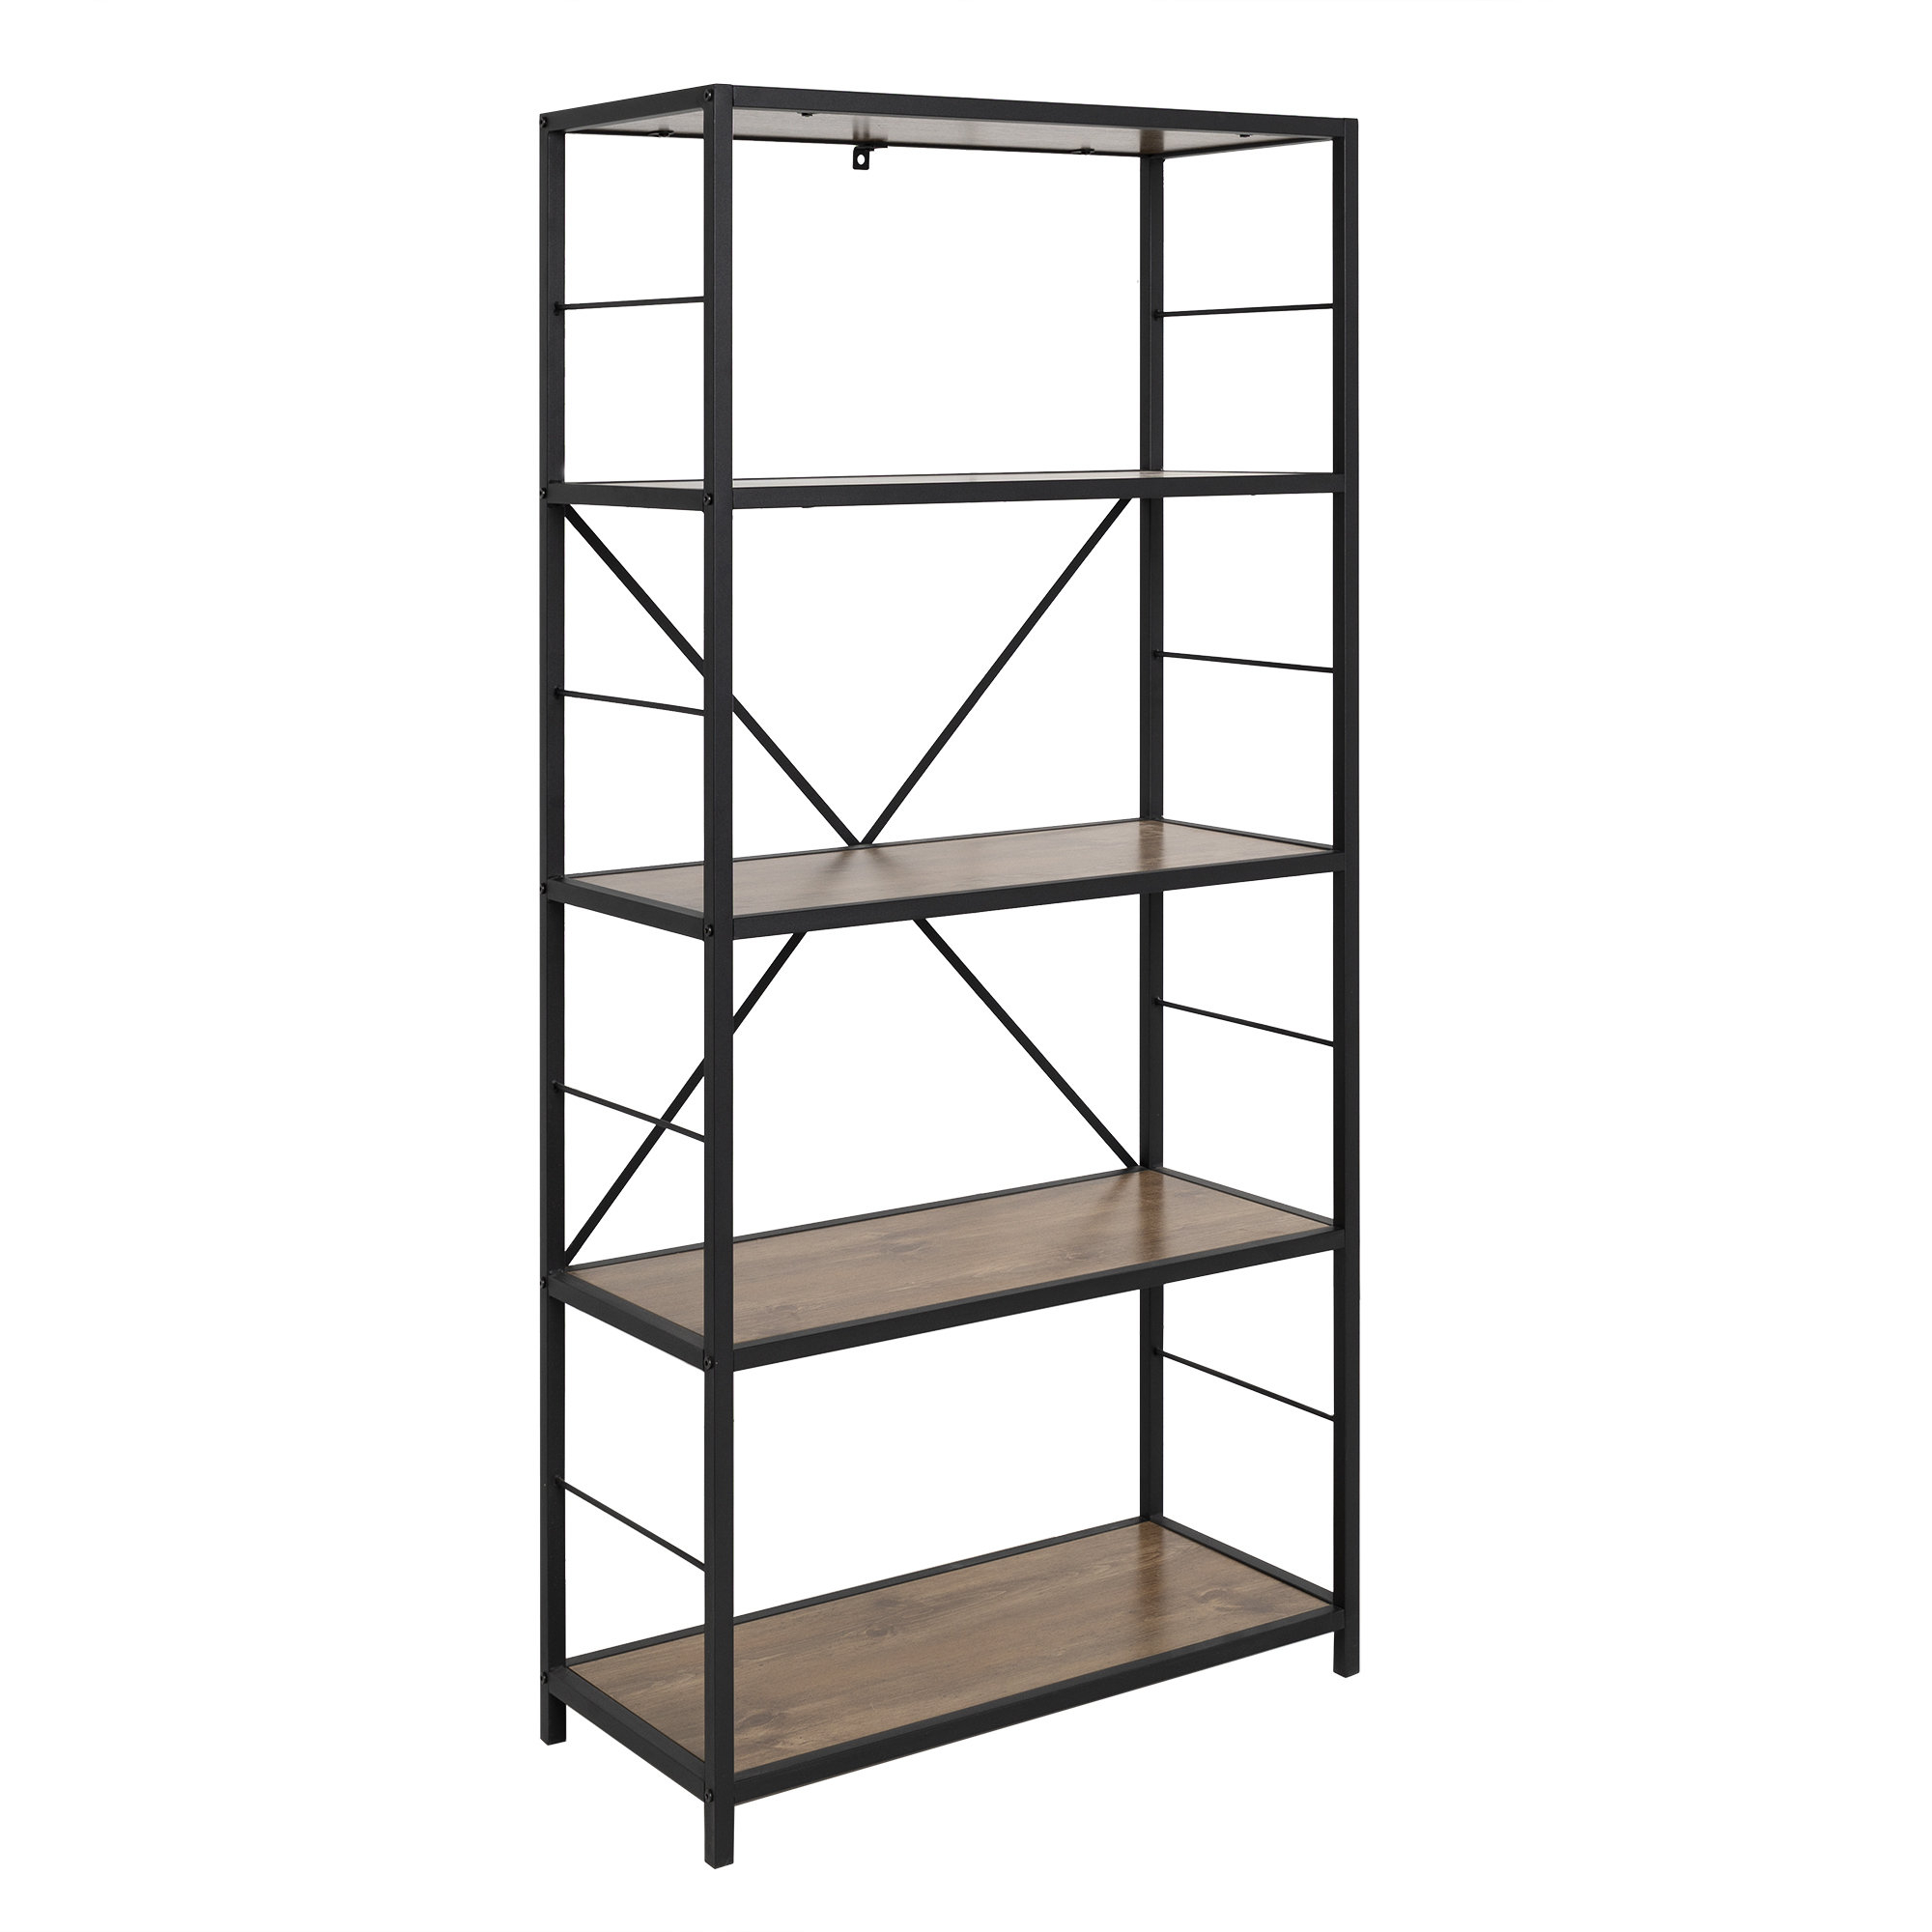 Modern 5 Shelf Etagere Bookcases (View 20 of 20)